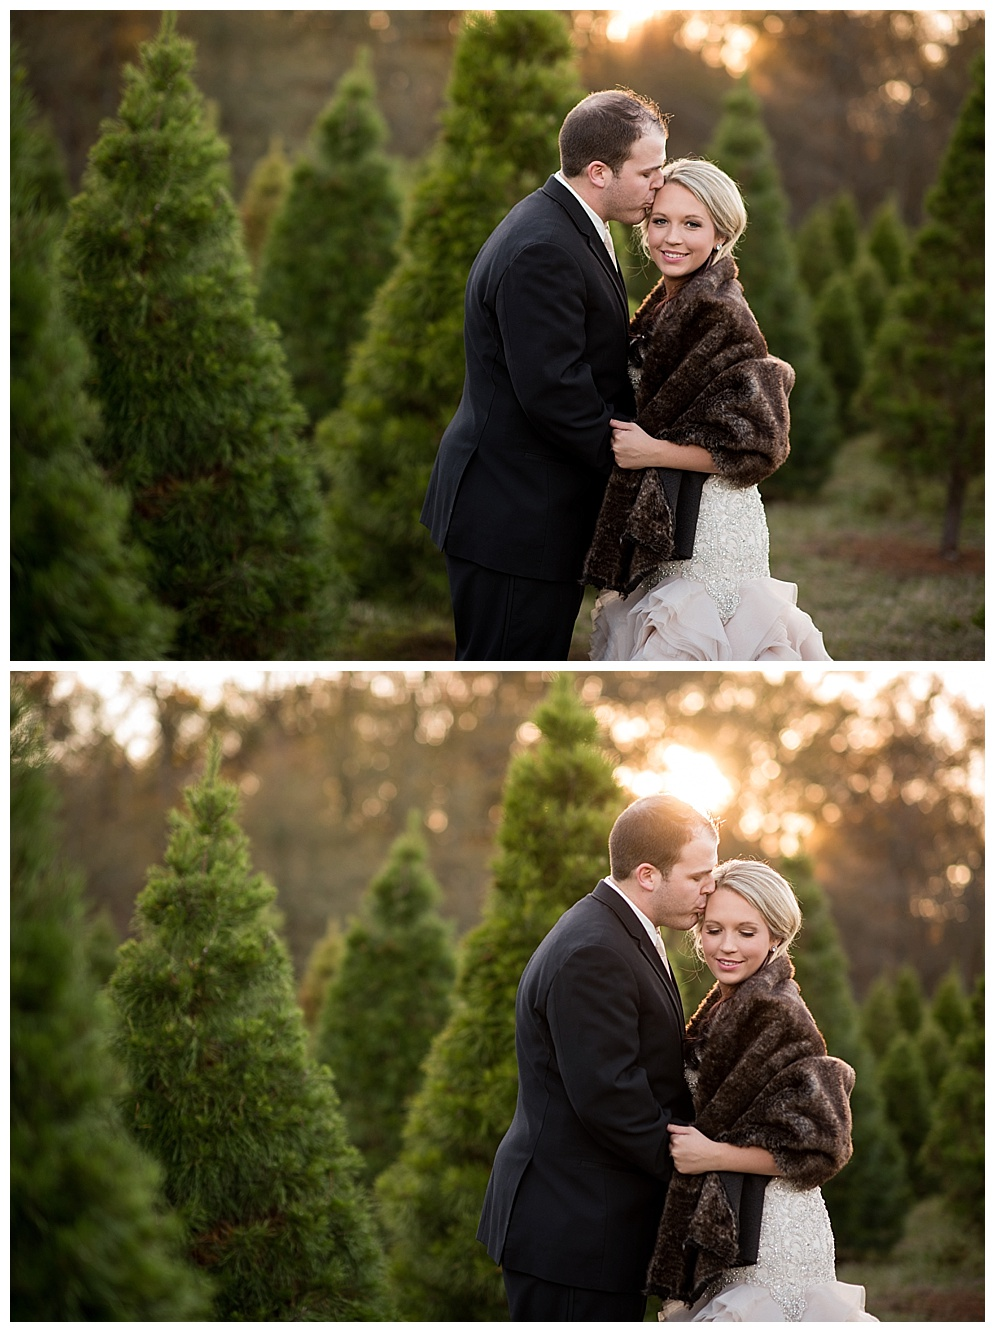 Emily_ChristmasTree_Farm_Arkansas_Wedding_Photographer_31.jpg